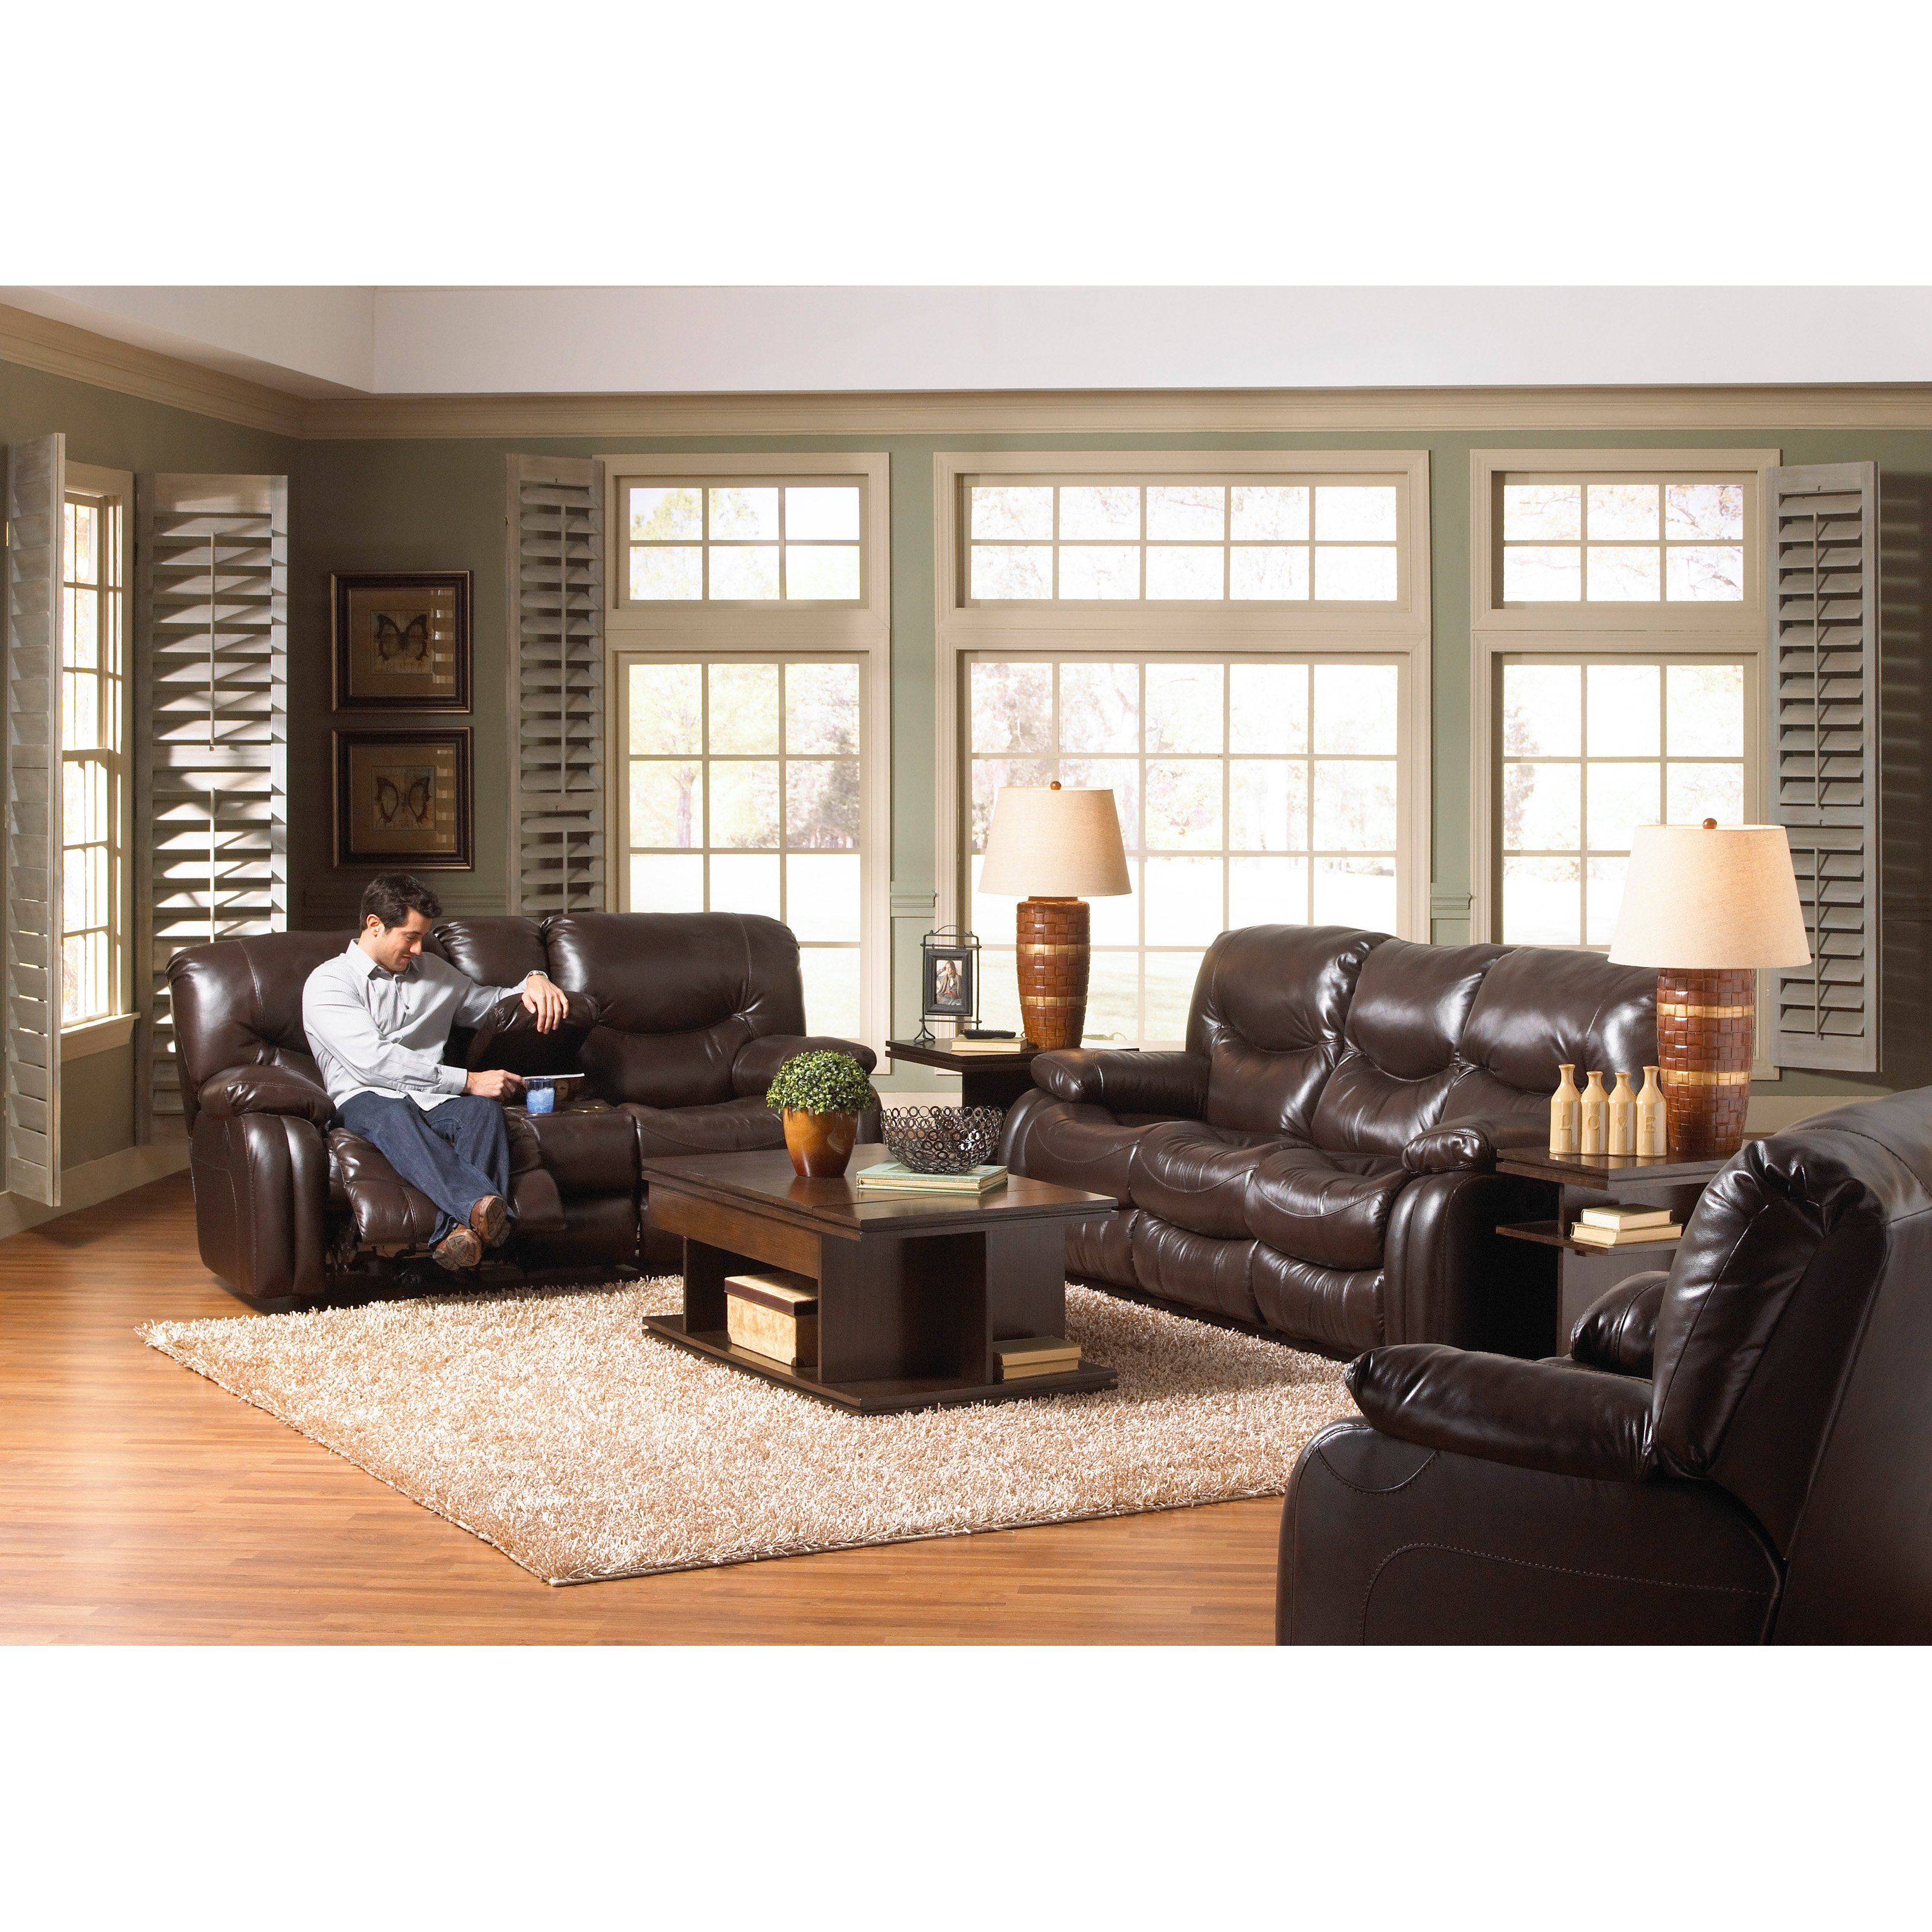 Catnapper Arlington Leather Reclining Sofa Set   Mahogany   Power   Recliner  Only